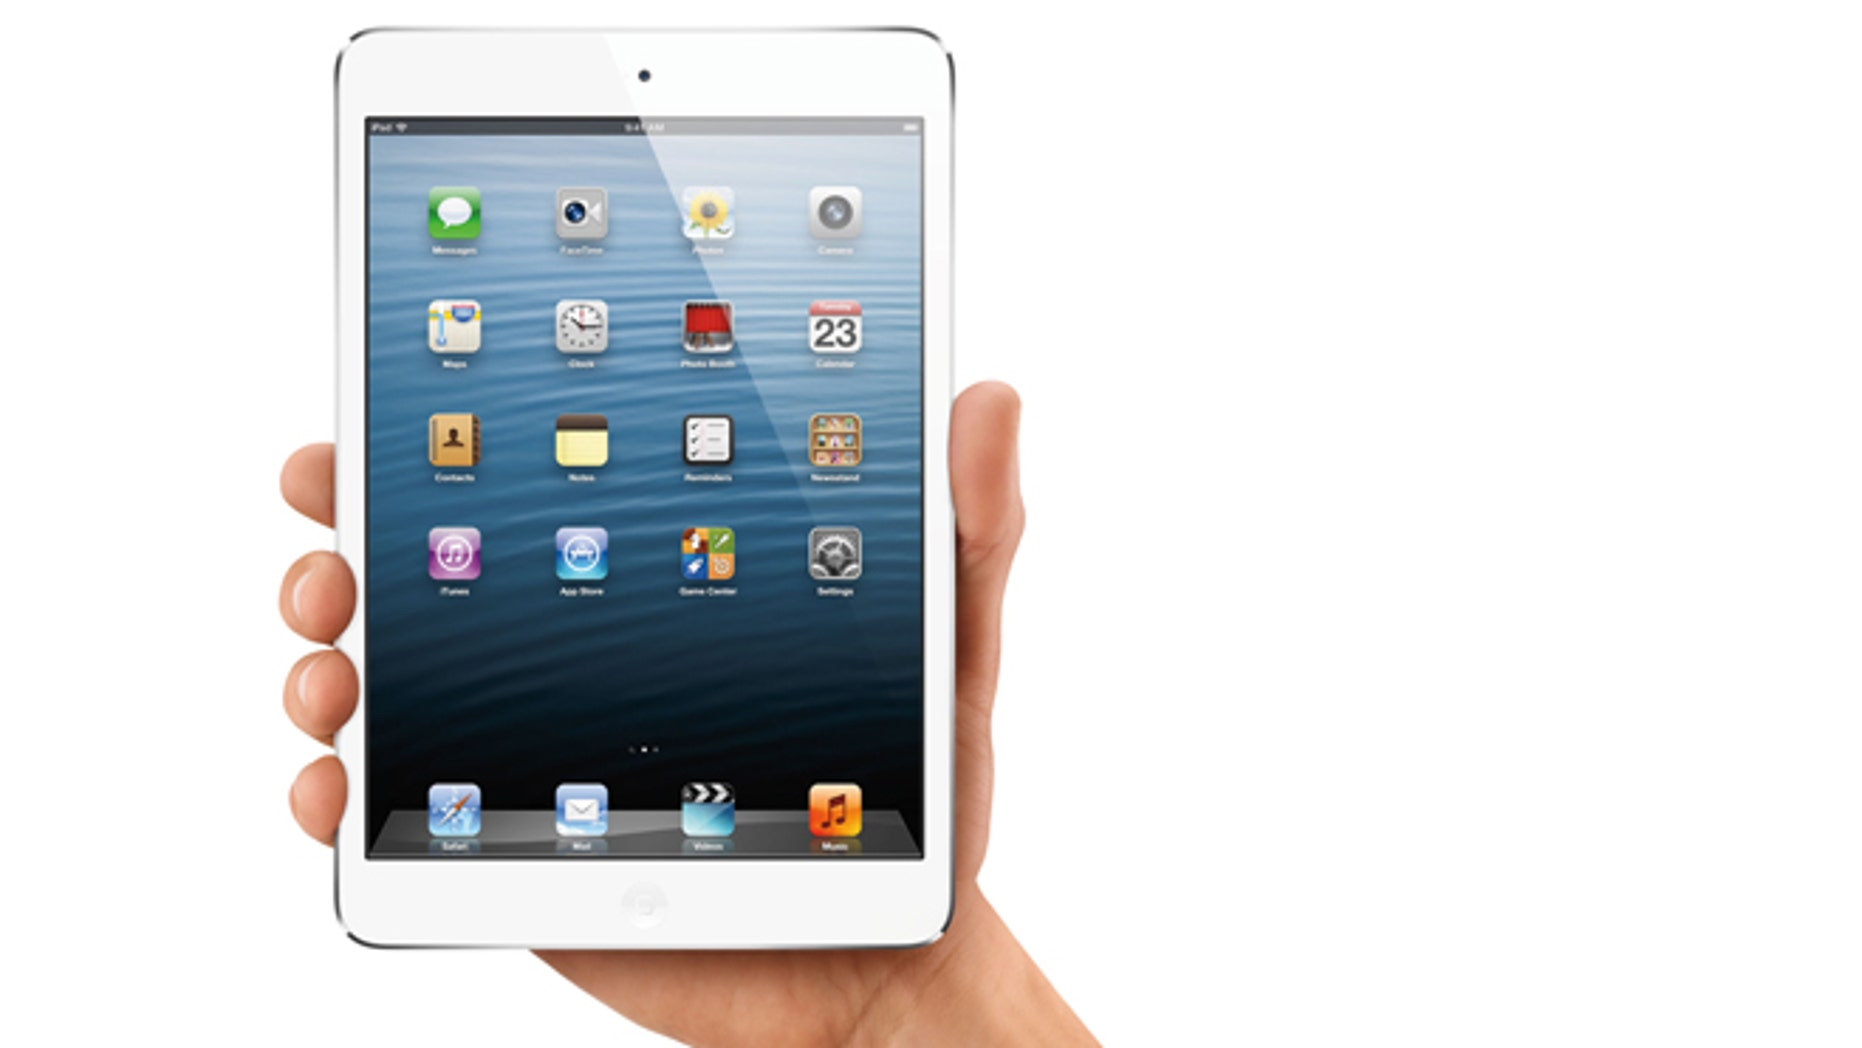 Oct. 23, 2012: Apple introduced the iPad mini, a new iPad design that is 23 percent thinner.